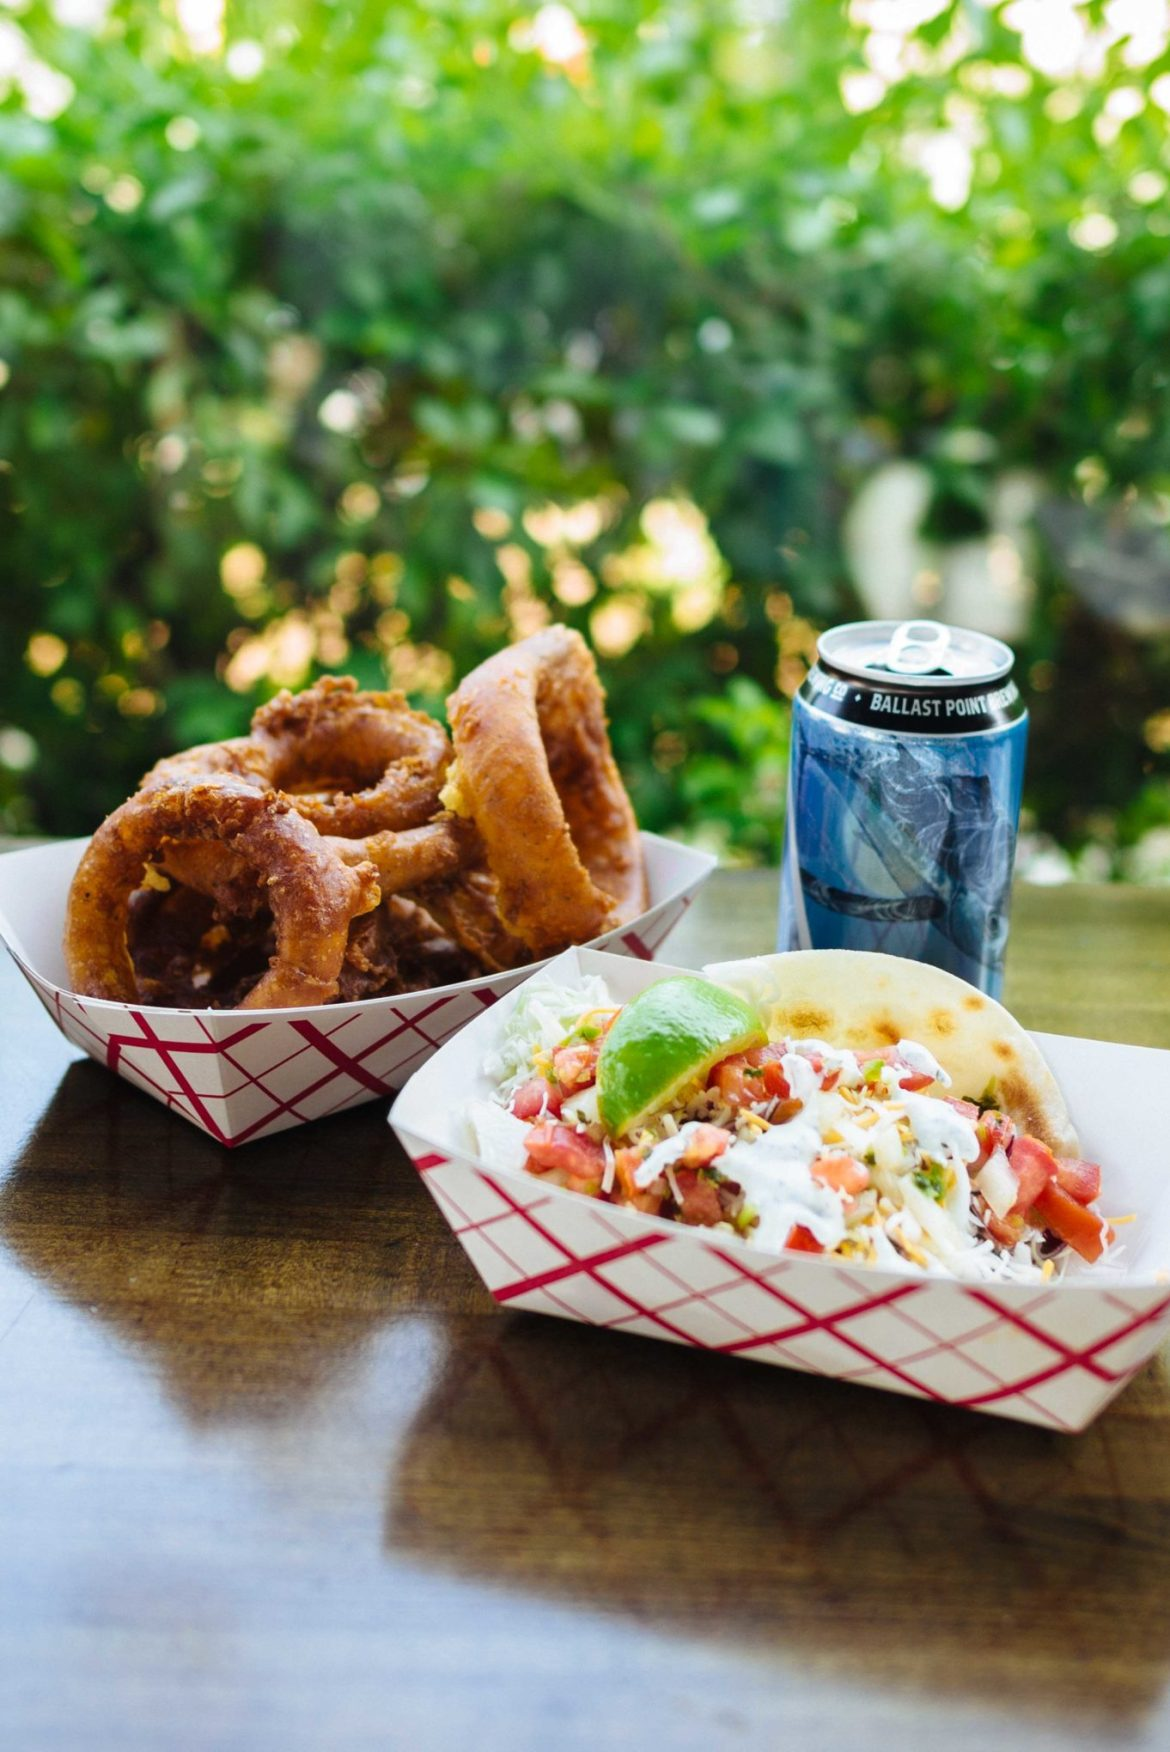 Sarah Stanfield from The Taste Edit recommends ordering fish tacos and onion rings at San Diegos Pacific Beach Fish Shop